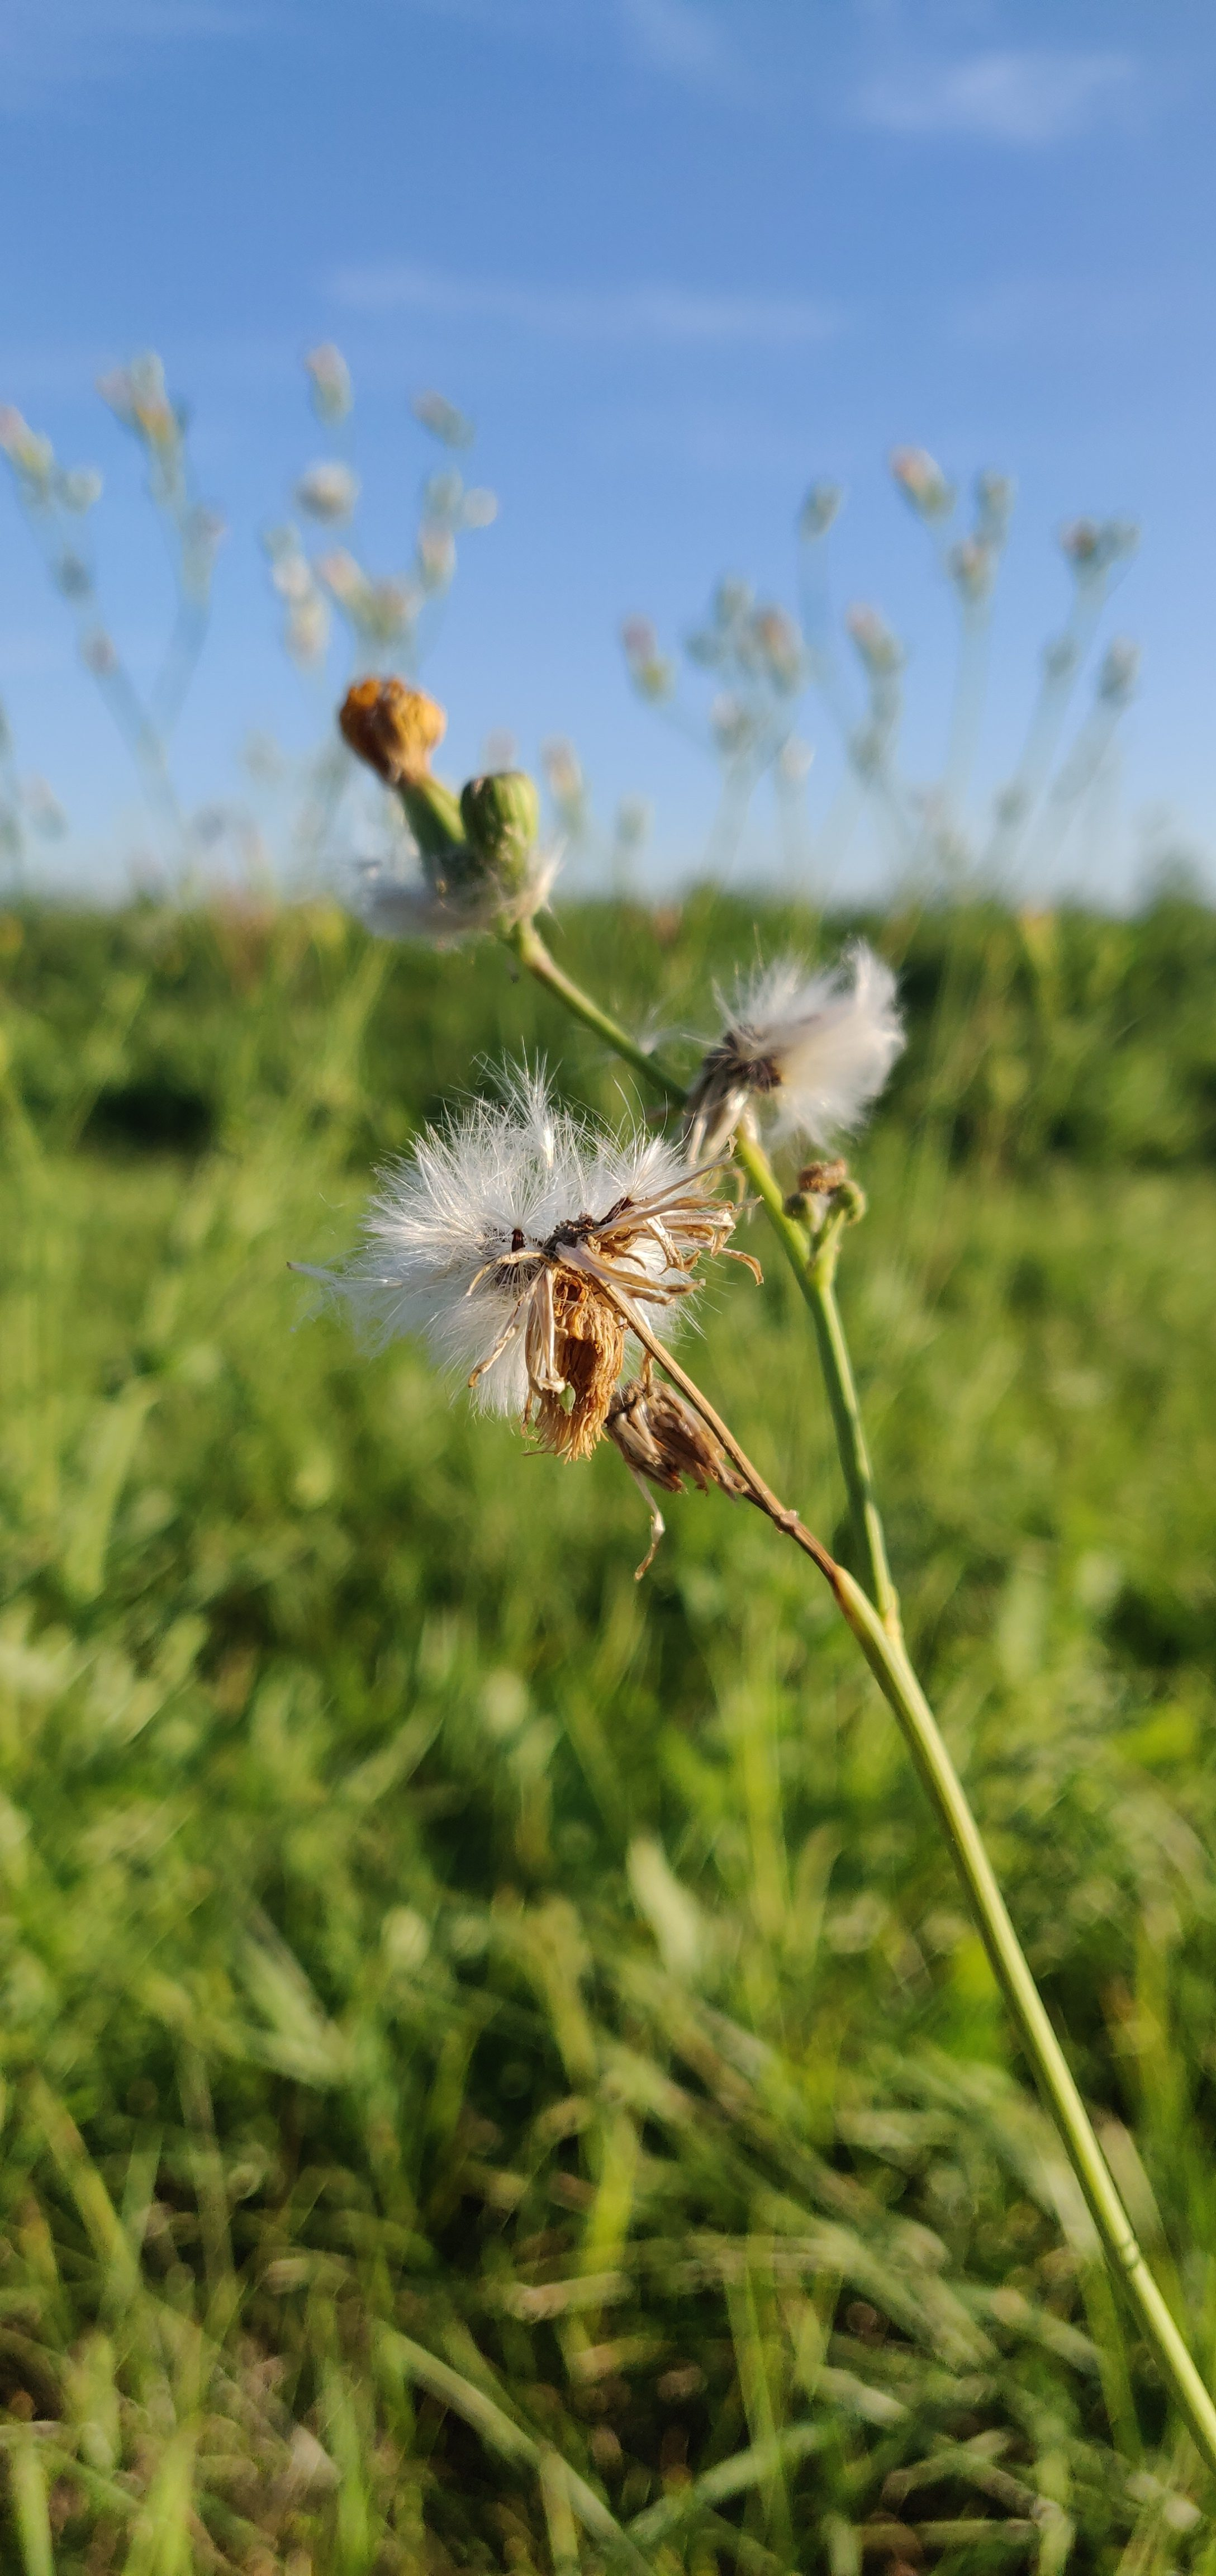 Little cotton-like puffs freely sway under the blue sky. nature, plant, landscape, sky Photo: Sudeshna Ganguly